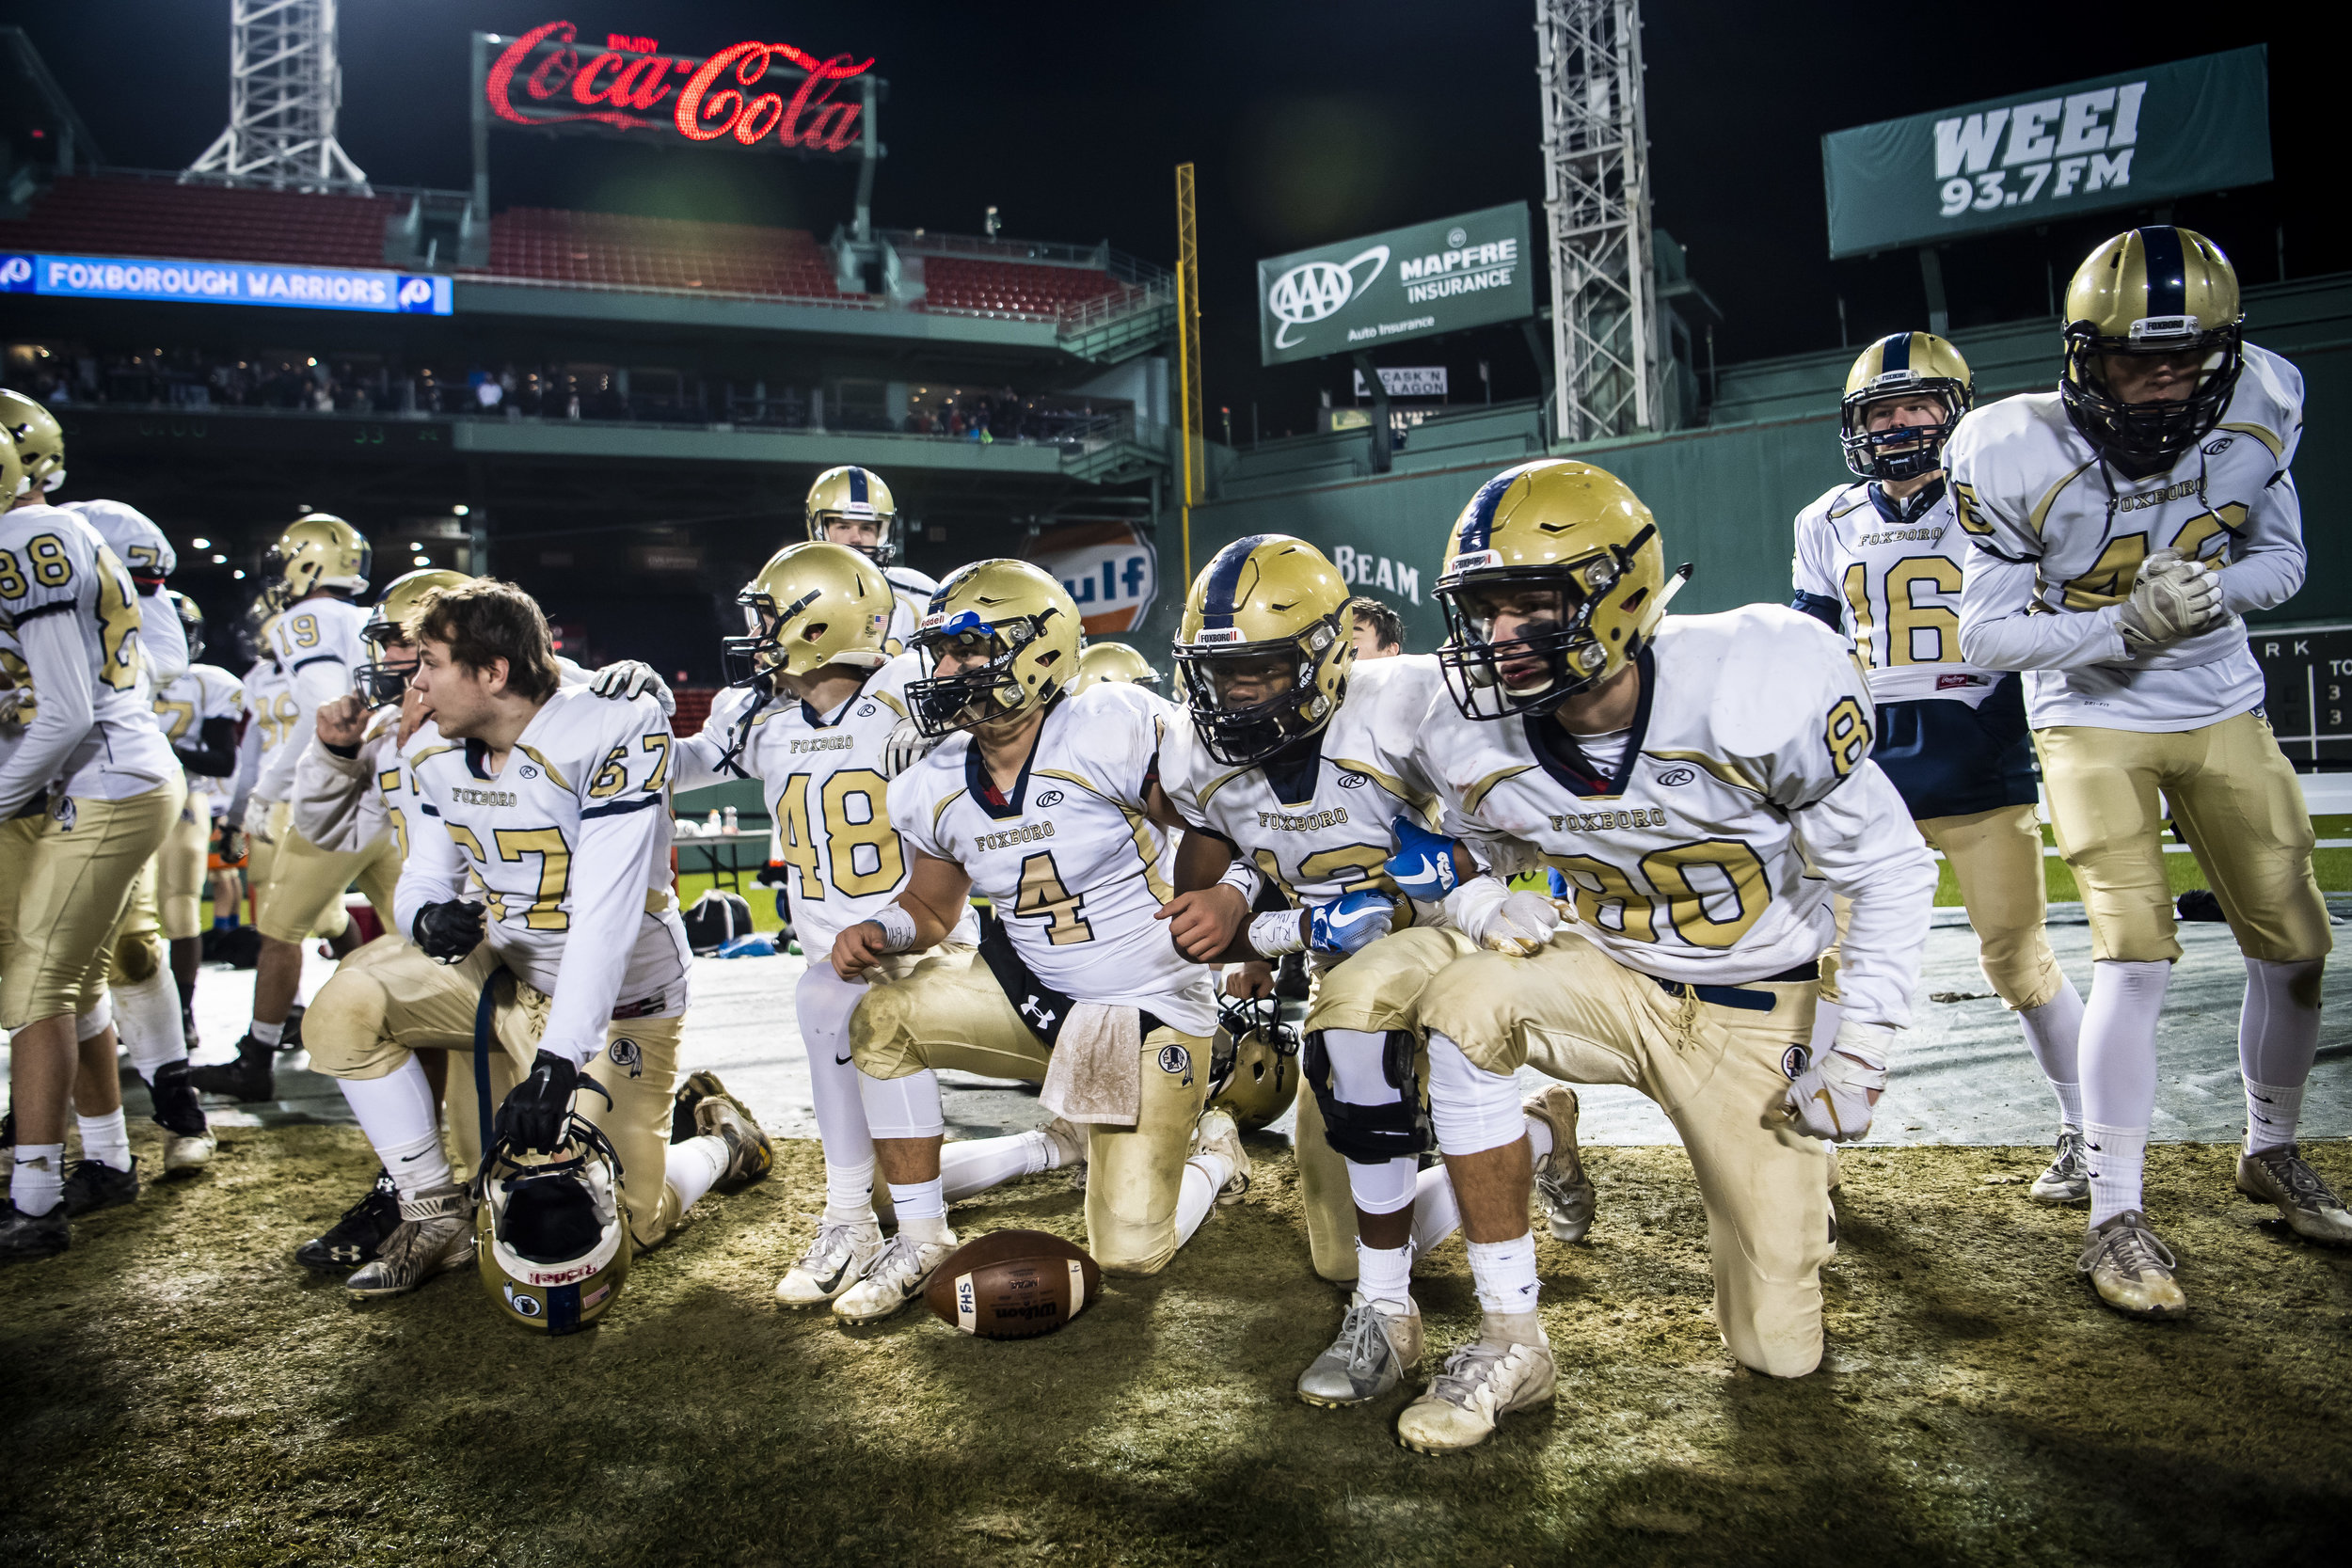 November 20, 2018, Boston, MA: Local high school football teams face off at Fenway Park in Boston, Massachusetts on Tuesday, November 20, 2018. (Photo by Matthew Thomas/Boston Red Sox)